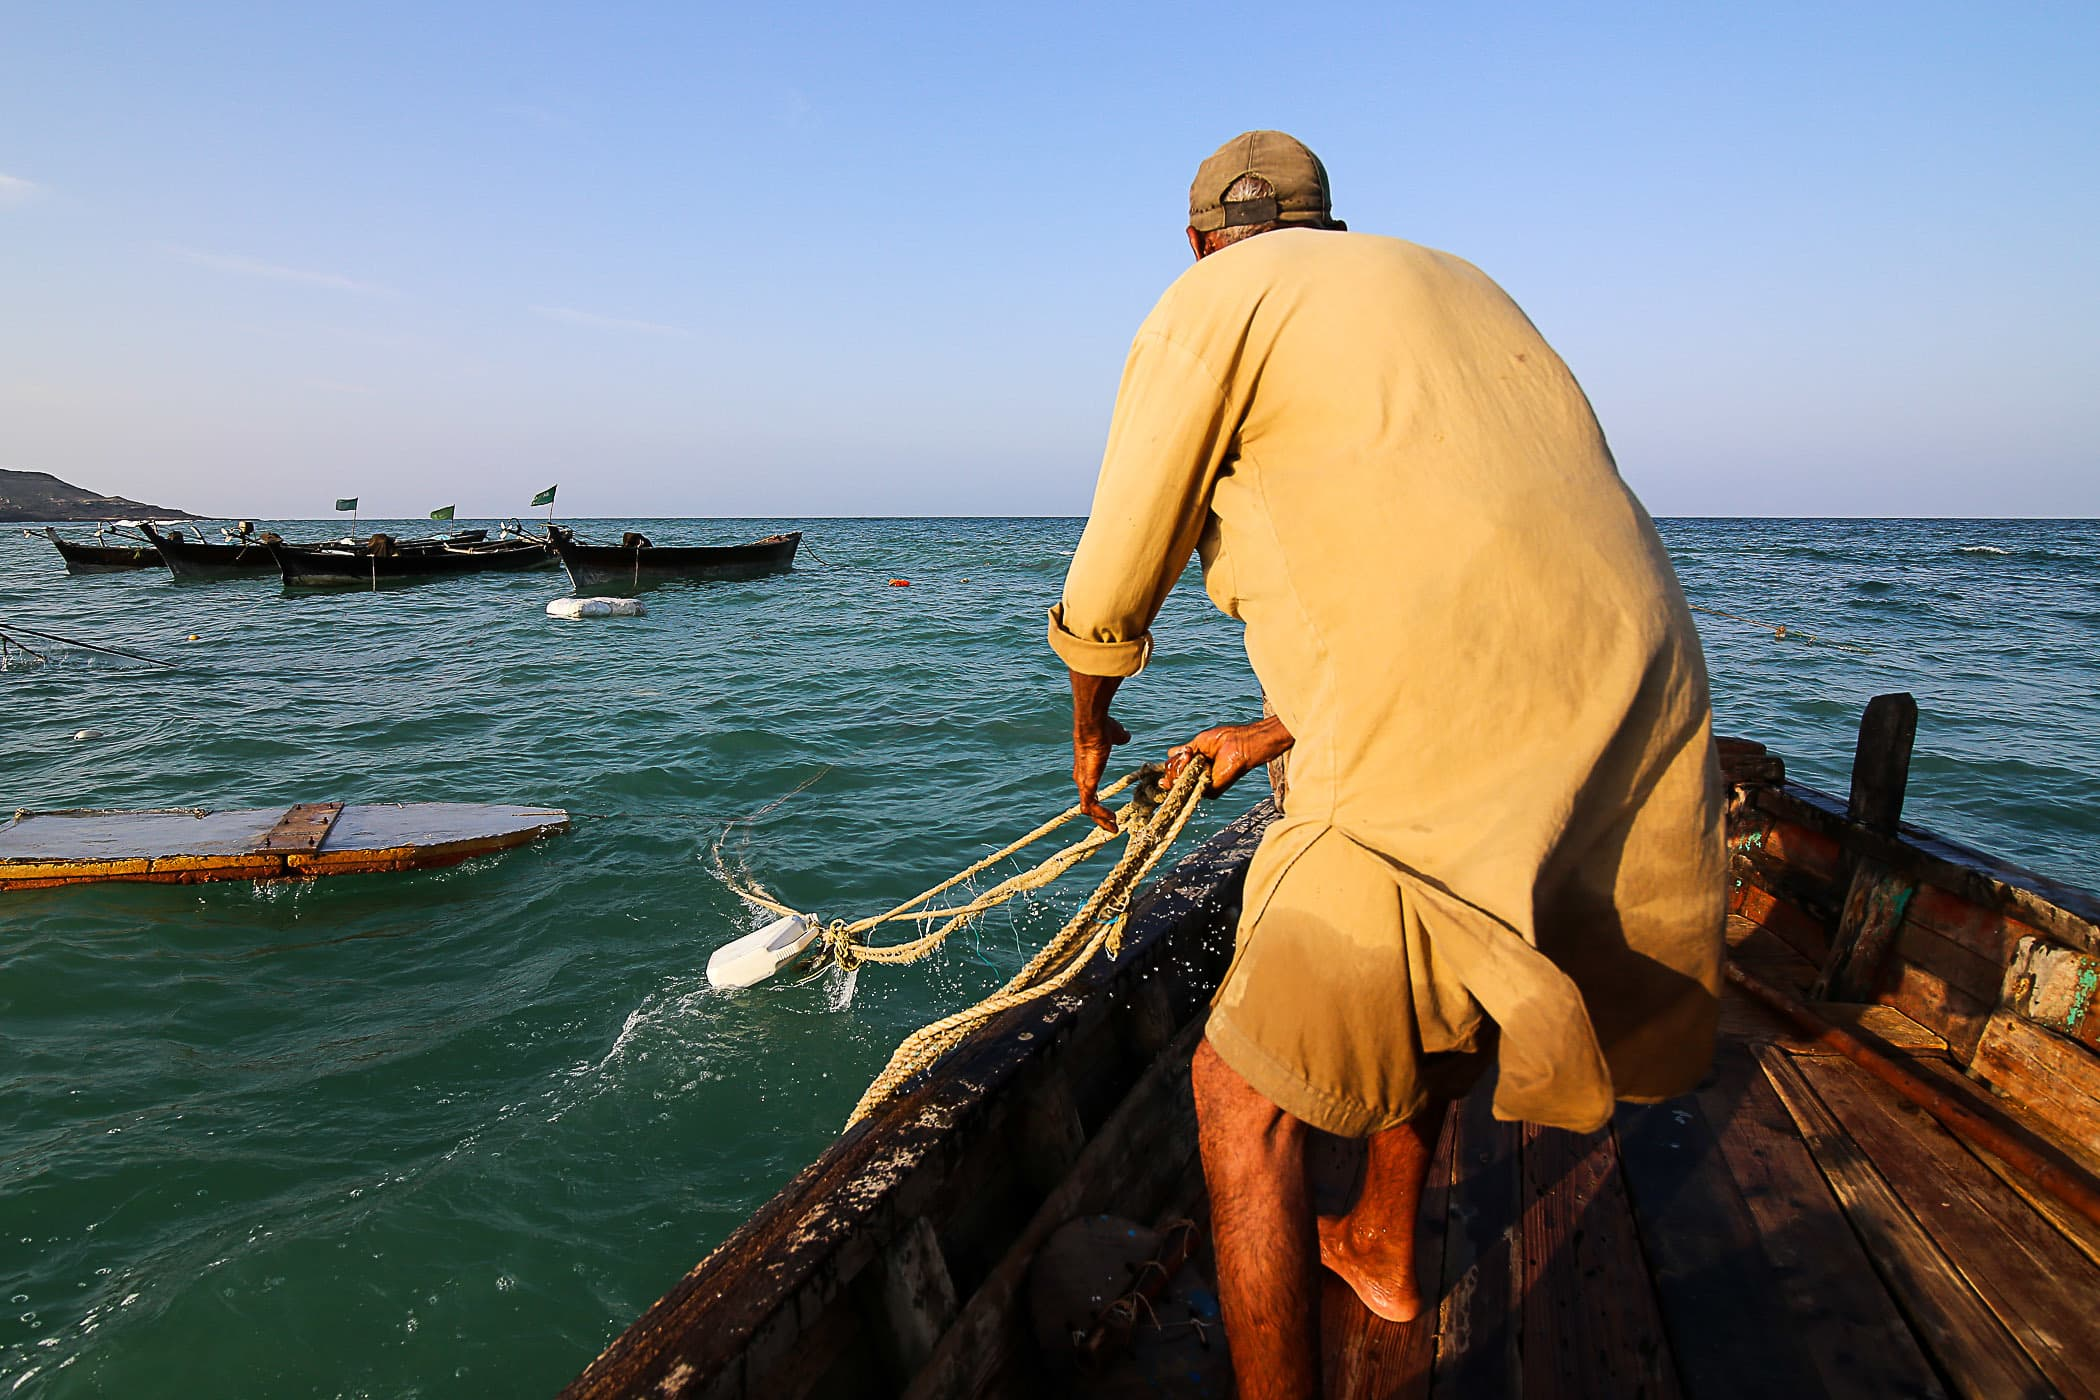 Chacha Majeed pulls a tethered line to reach the other boats.